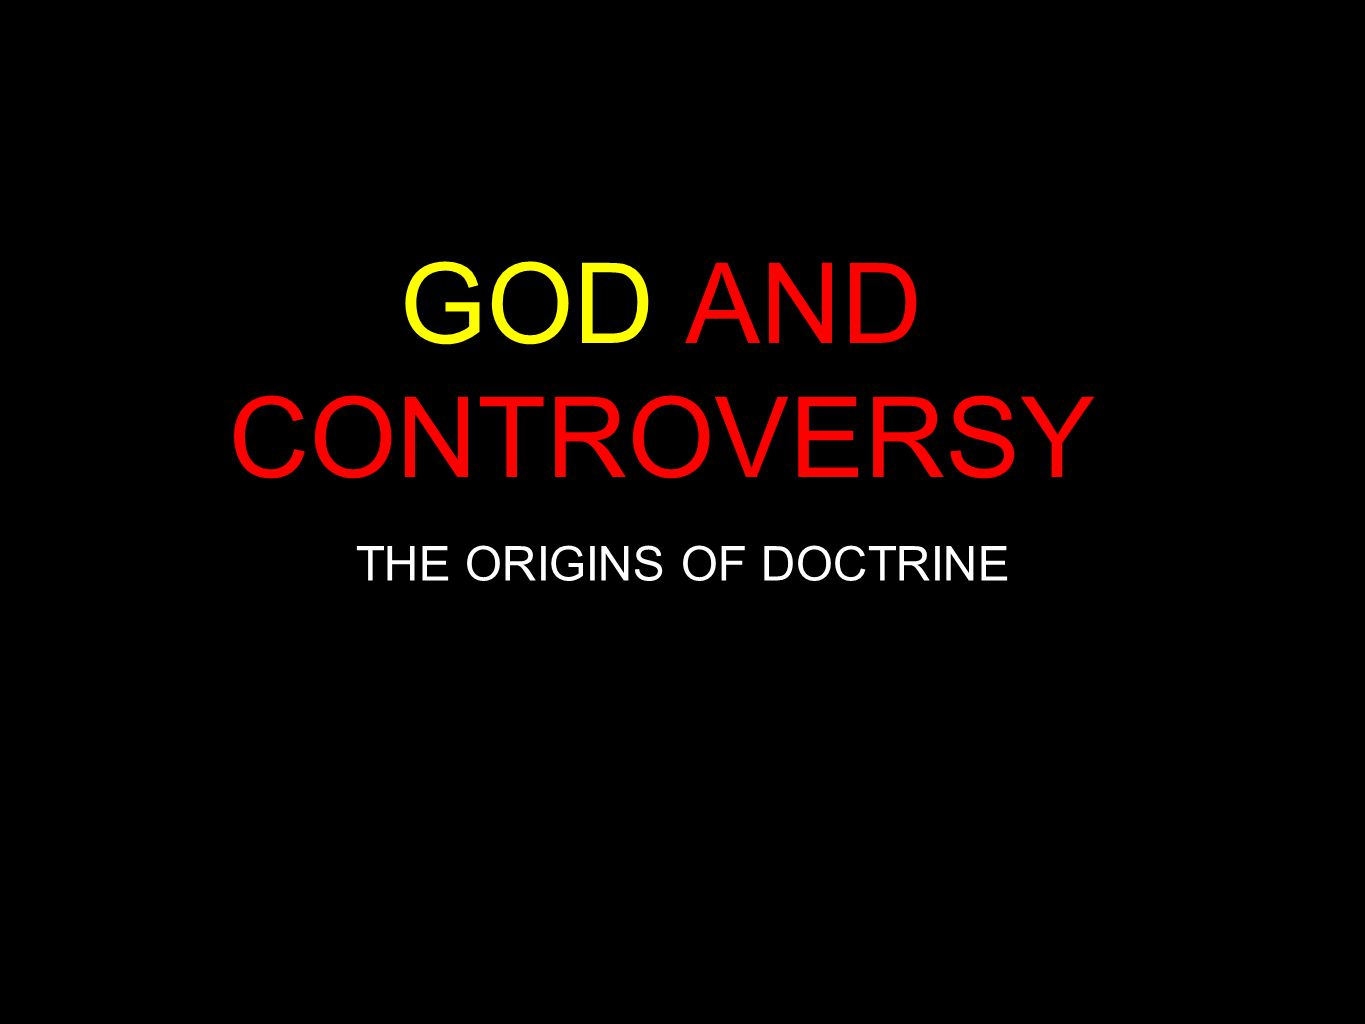 GOD AND CONTROVERSY THE ORIGINS OF DOCTRINE